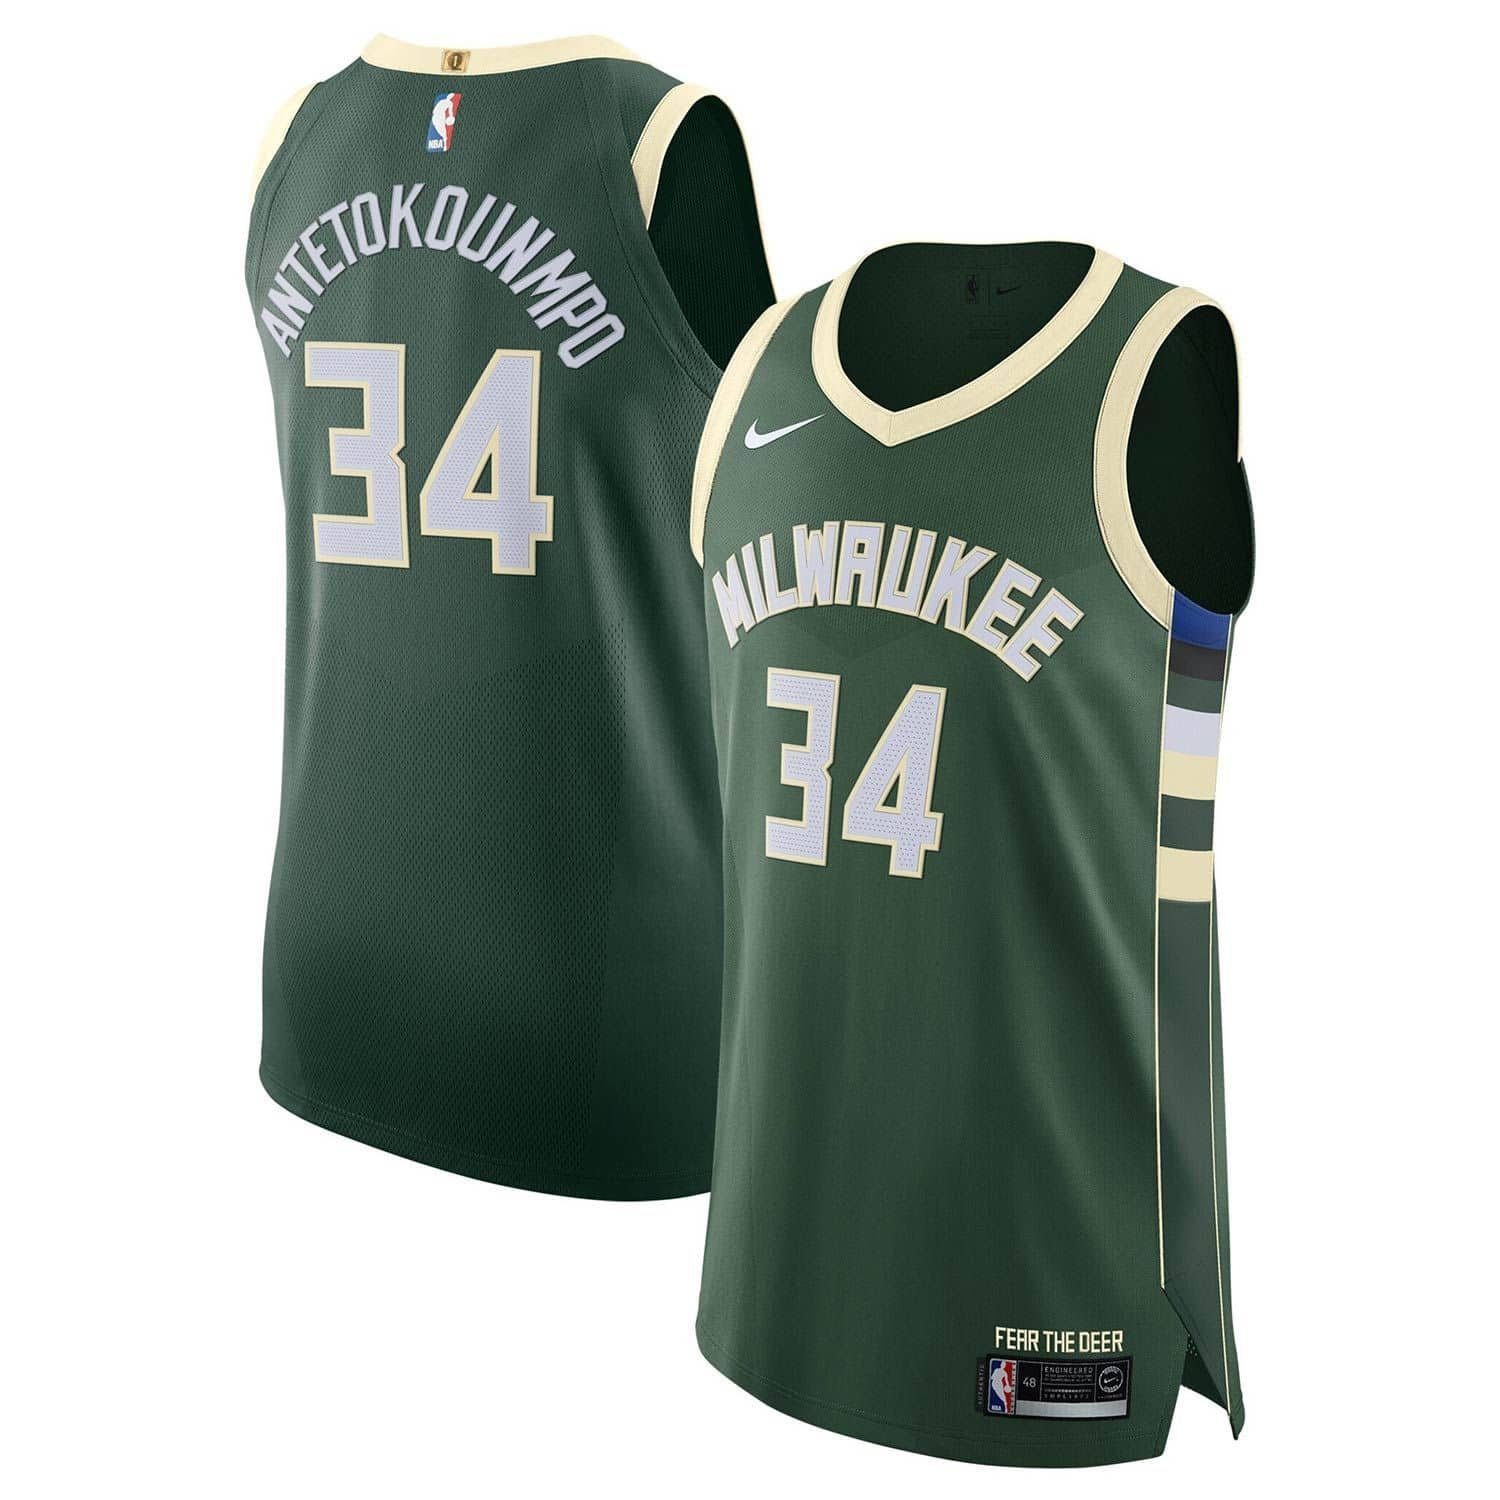 06532b0a9e6 Nike Giannis Antetokounmpo #34 Milwaukee Bucks Icon Authentic NBA Jersey  Green | TAASS.com Fan Shop